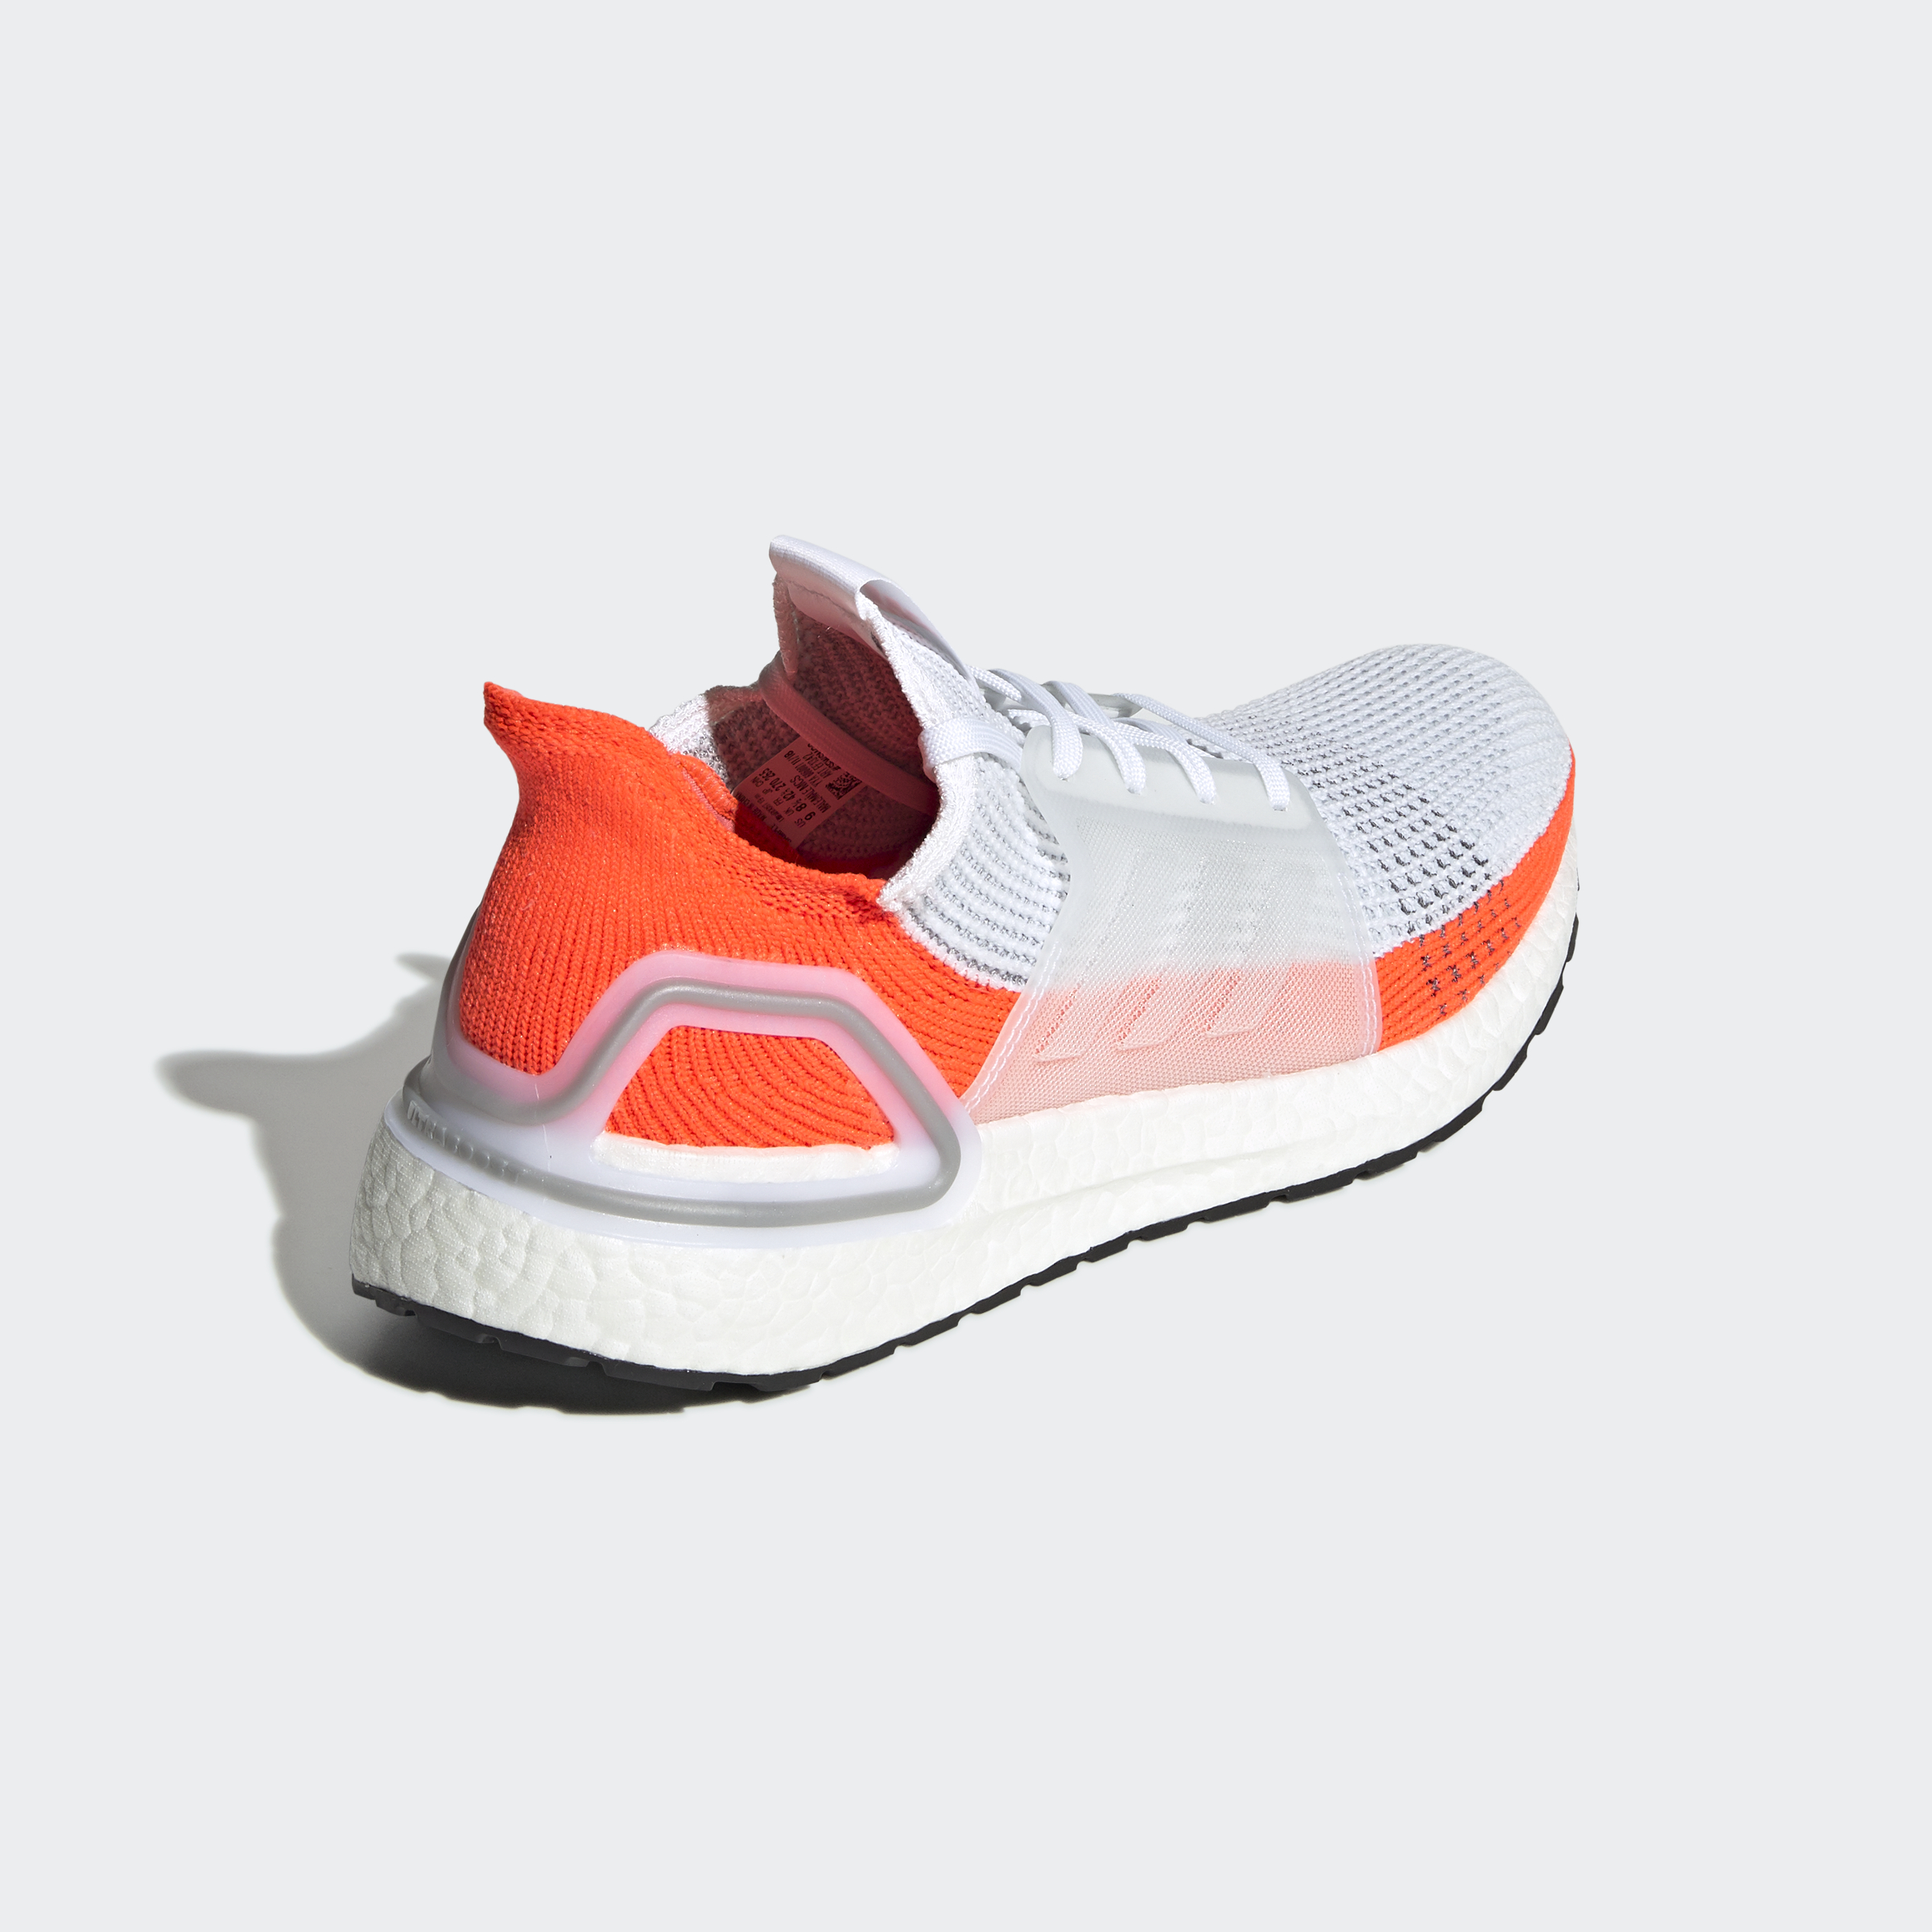 adidas-Ultraboost-19-Shoes-Athletic-amp-Sneakers thumbnail 24